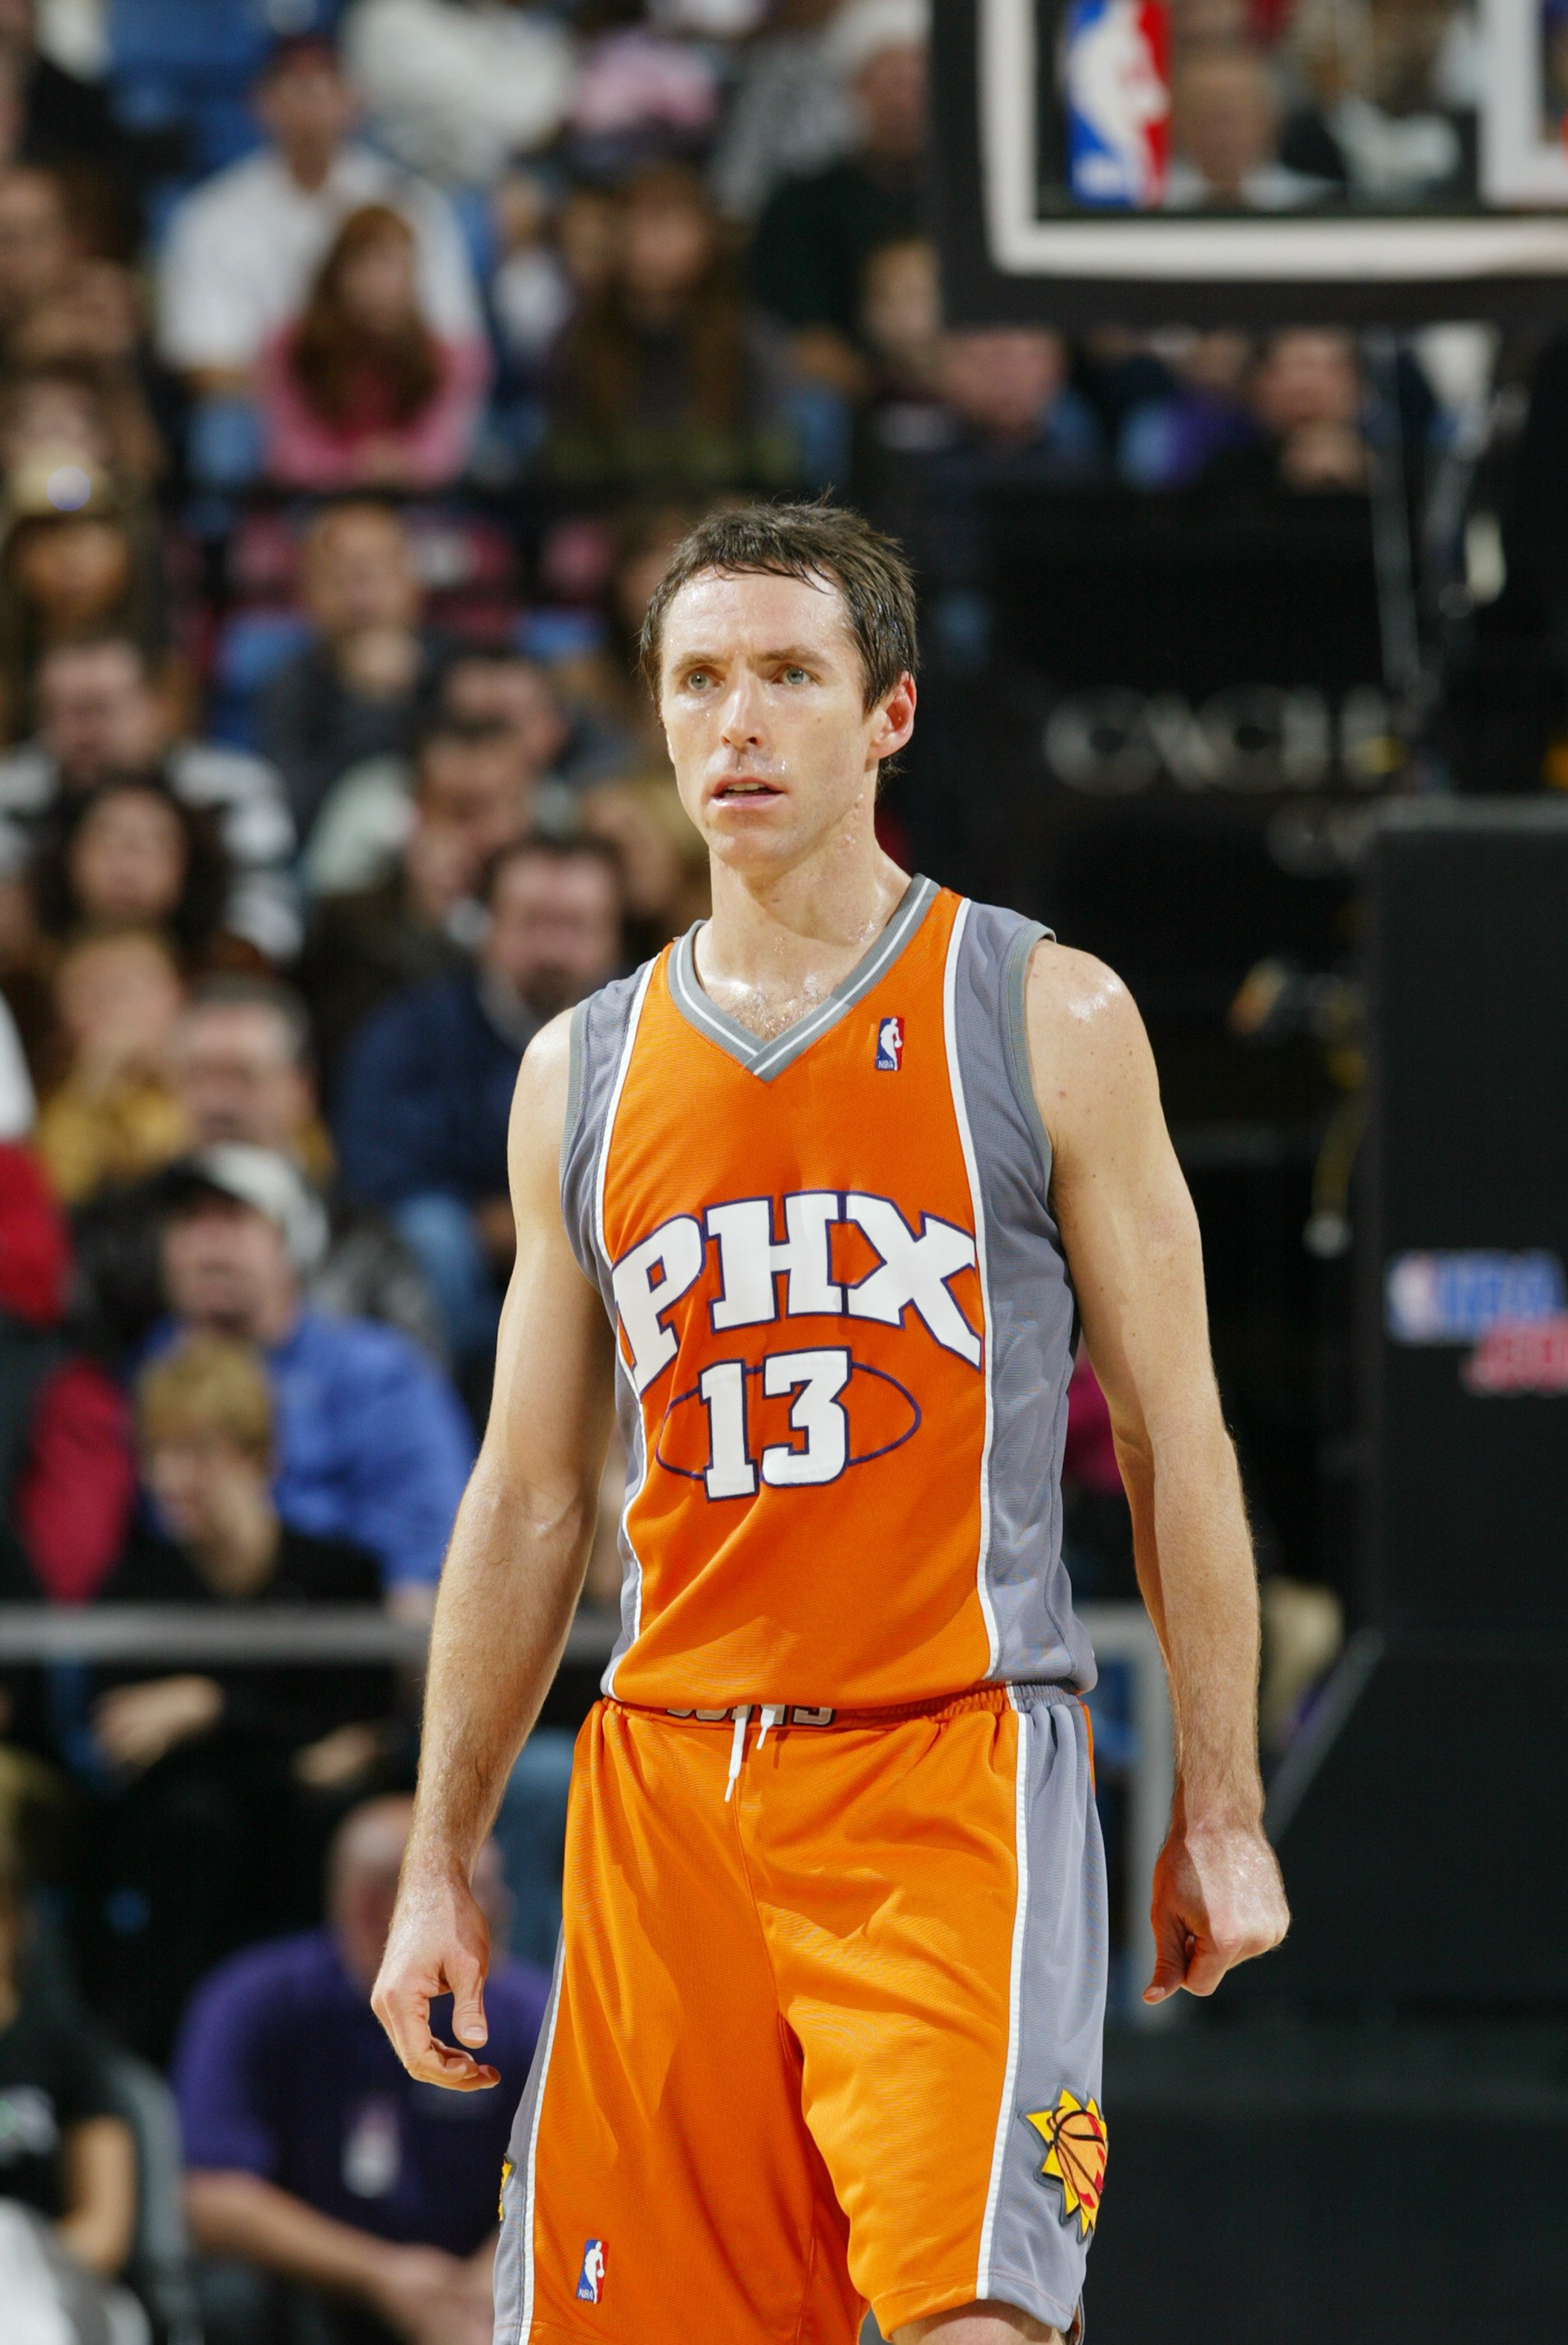 SACRAMENTO, CA - DECEMBER 16:  Steve Nash #13 of the Phoenix Suns stands on the court during the NBA game against the Sacramento Kings at Arco Arena on December 16, 2006 in Sacramento, California. The Suns won 105-98. NOTE TO USER: User expressly acknowle